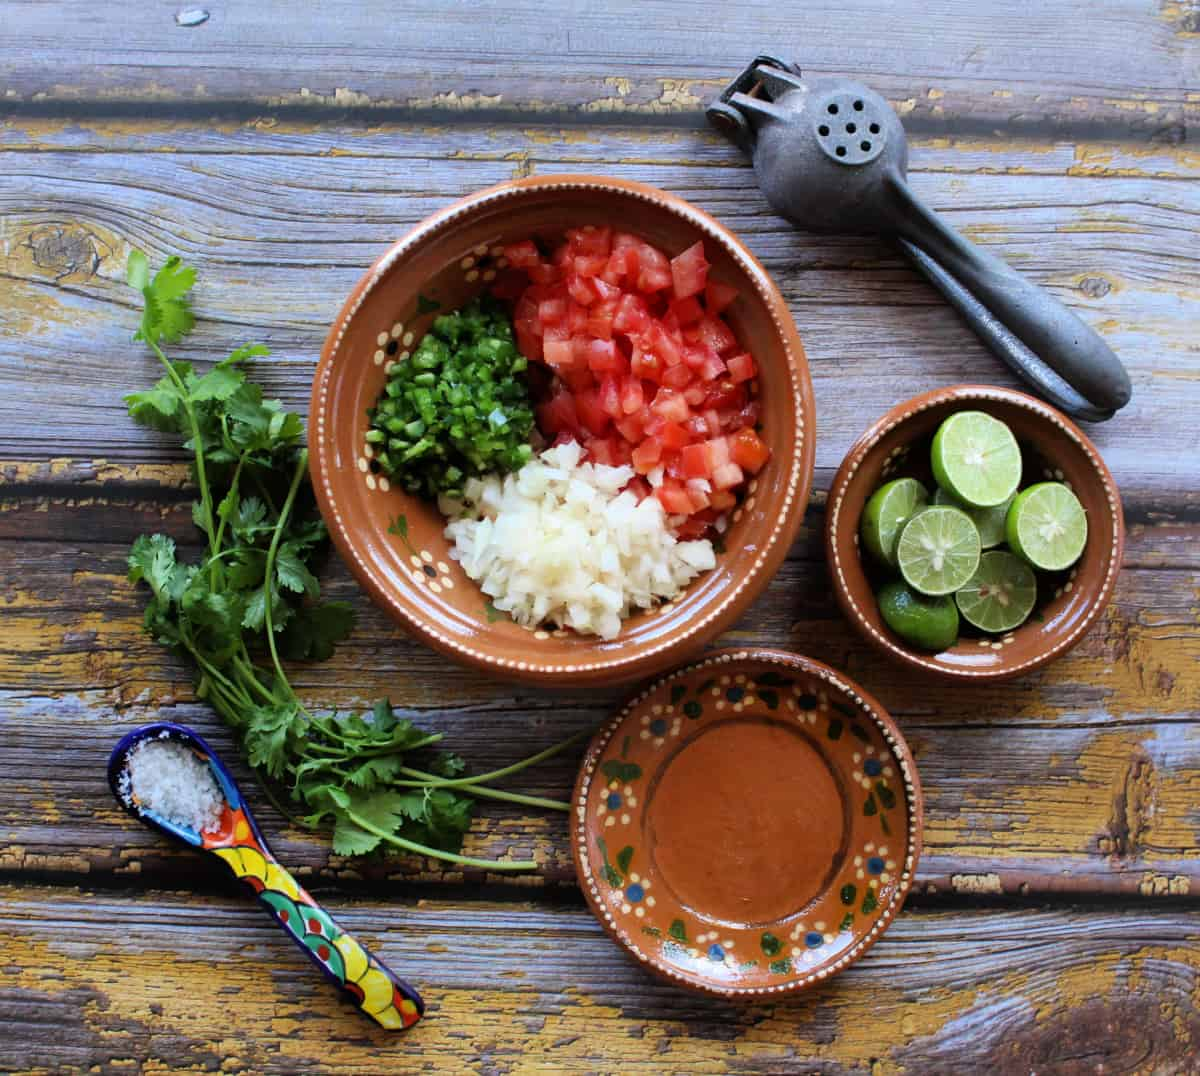 The ingredients to make pico de gallo in a Mexican clay bowl.